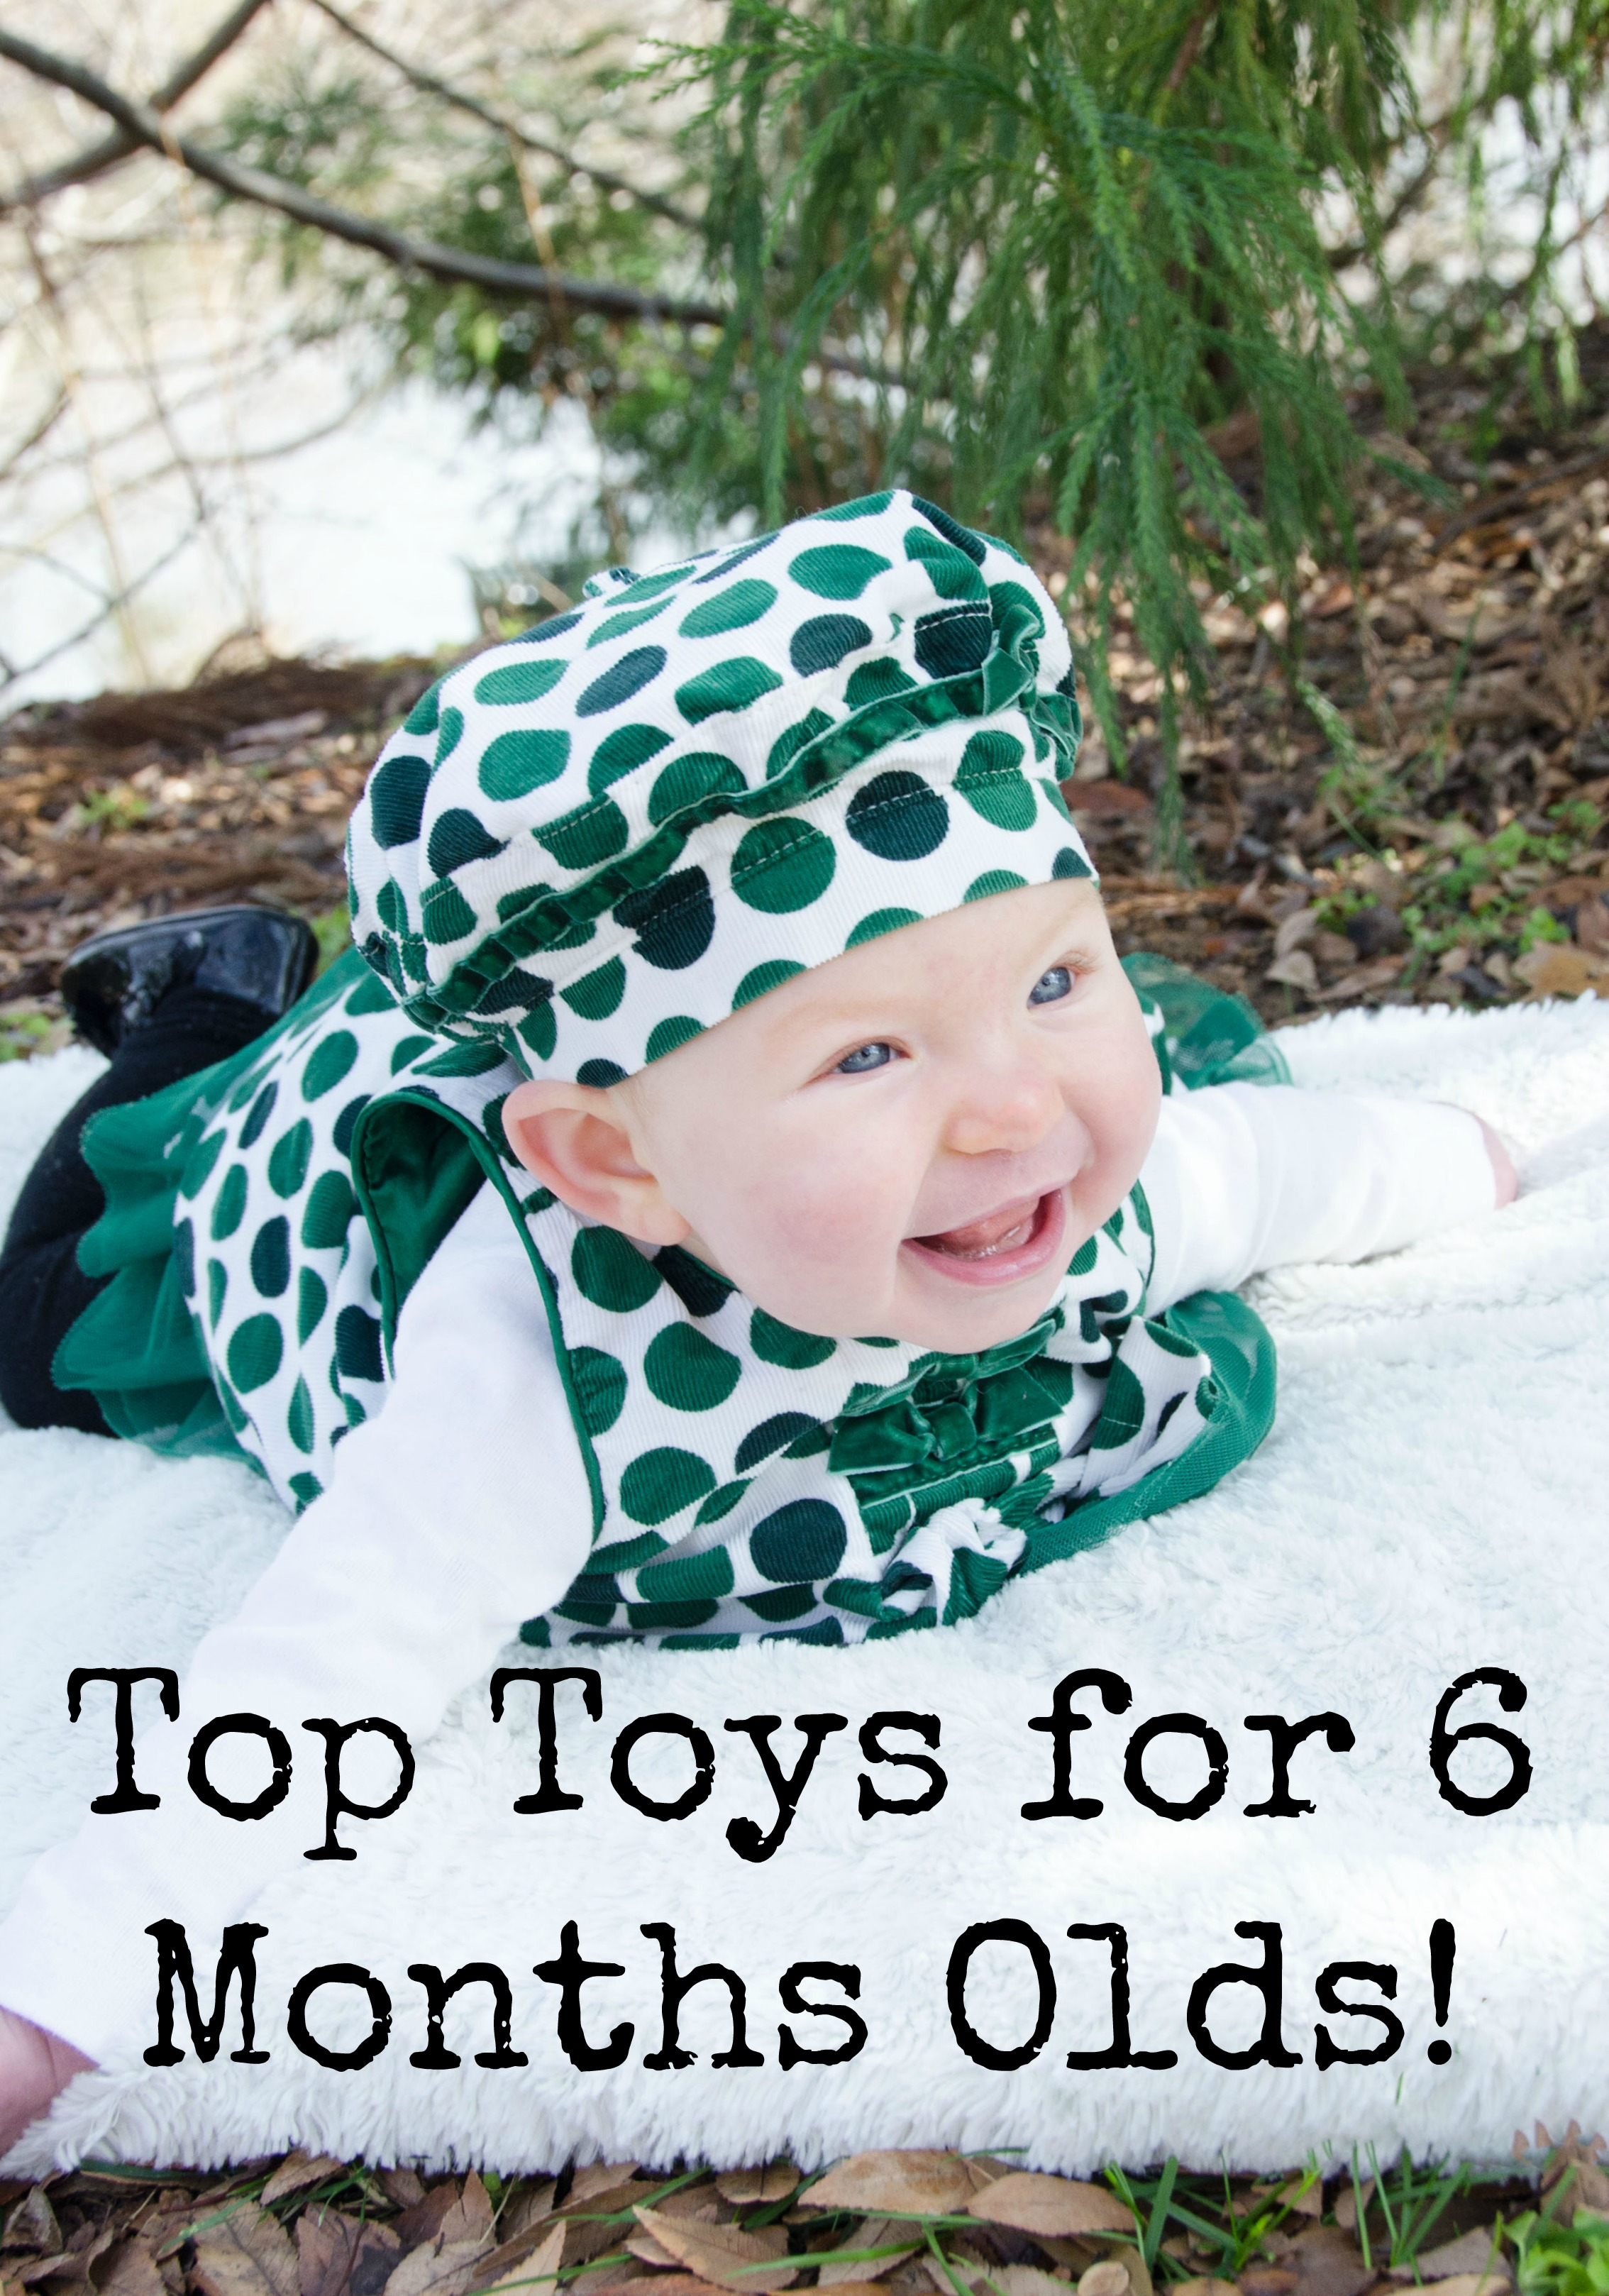 Top Toys For 6 Month Olds